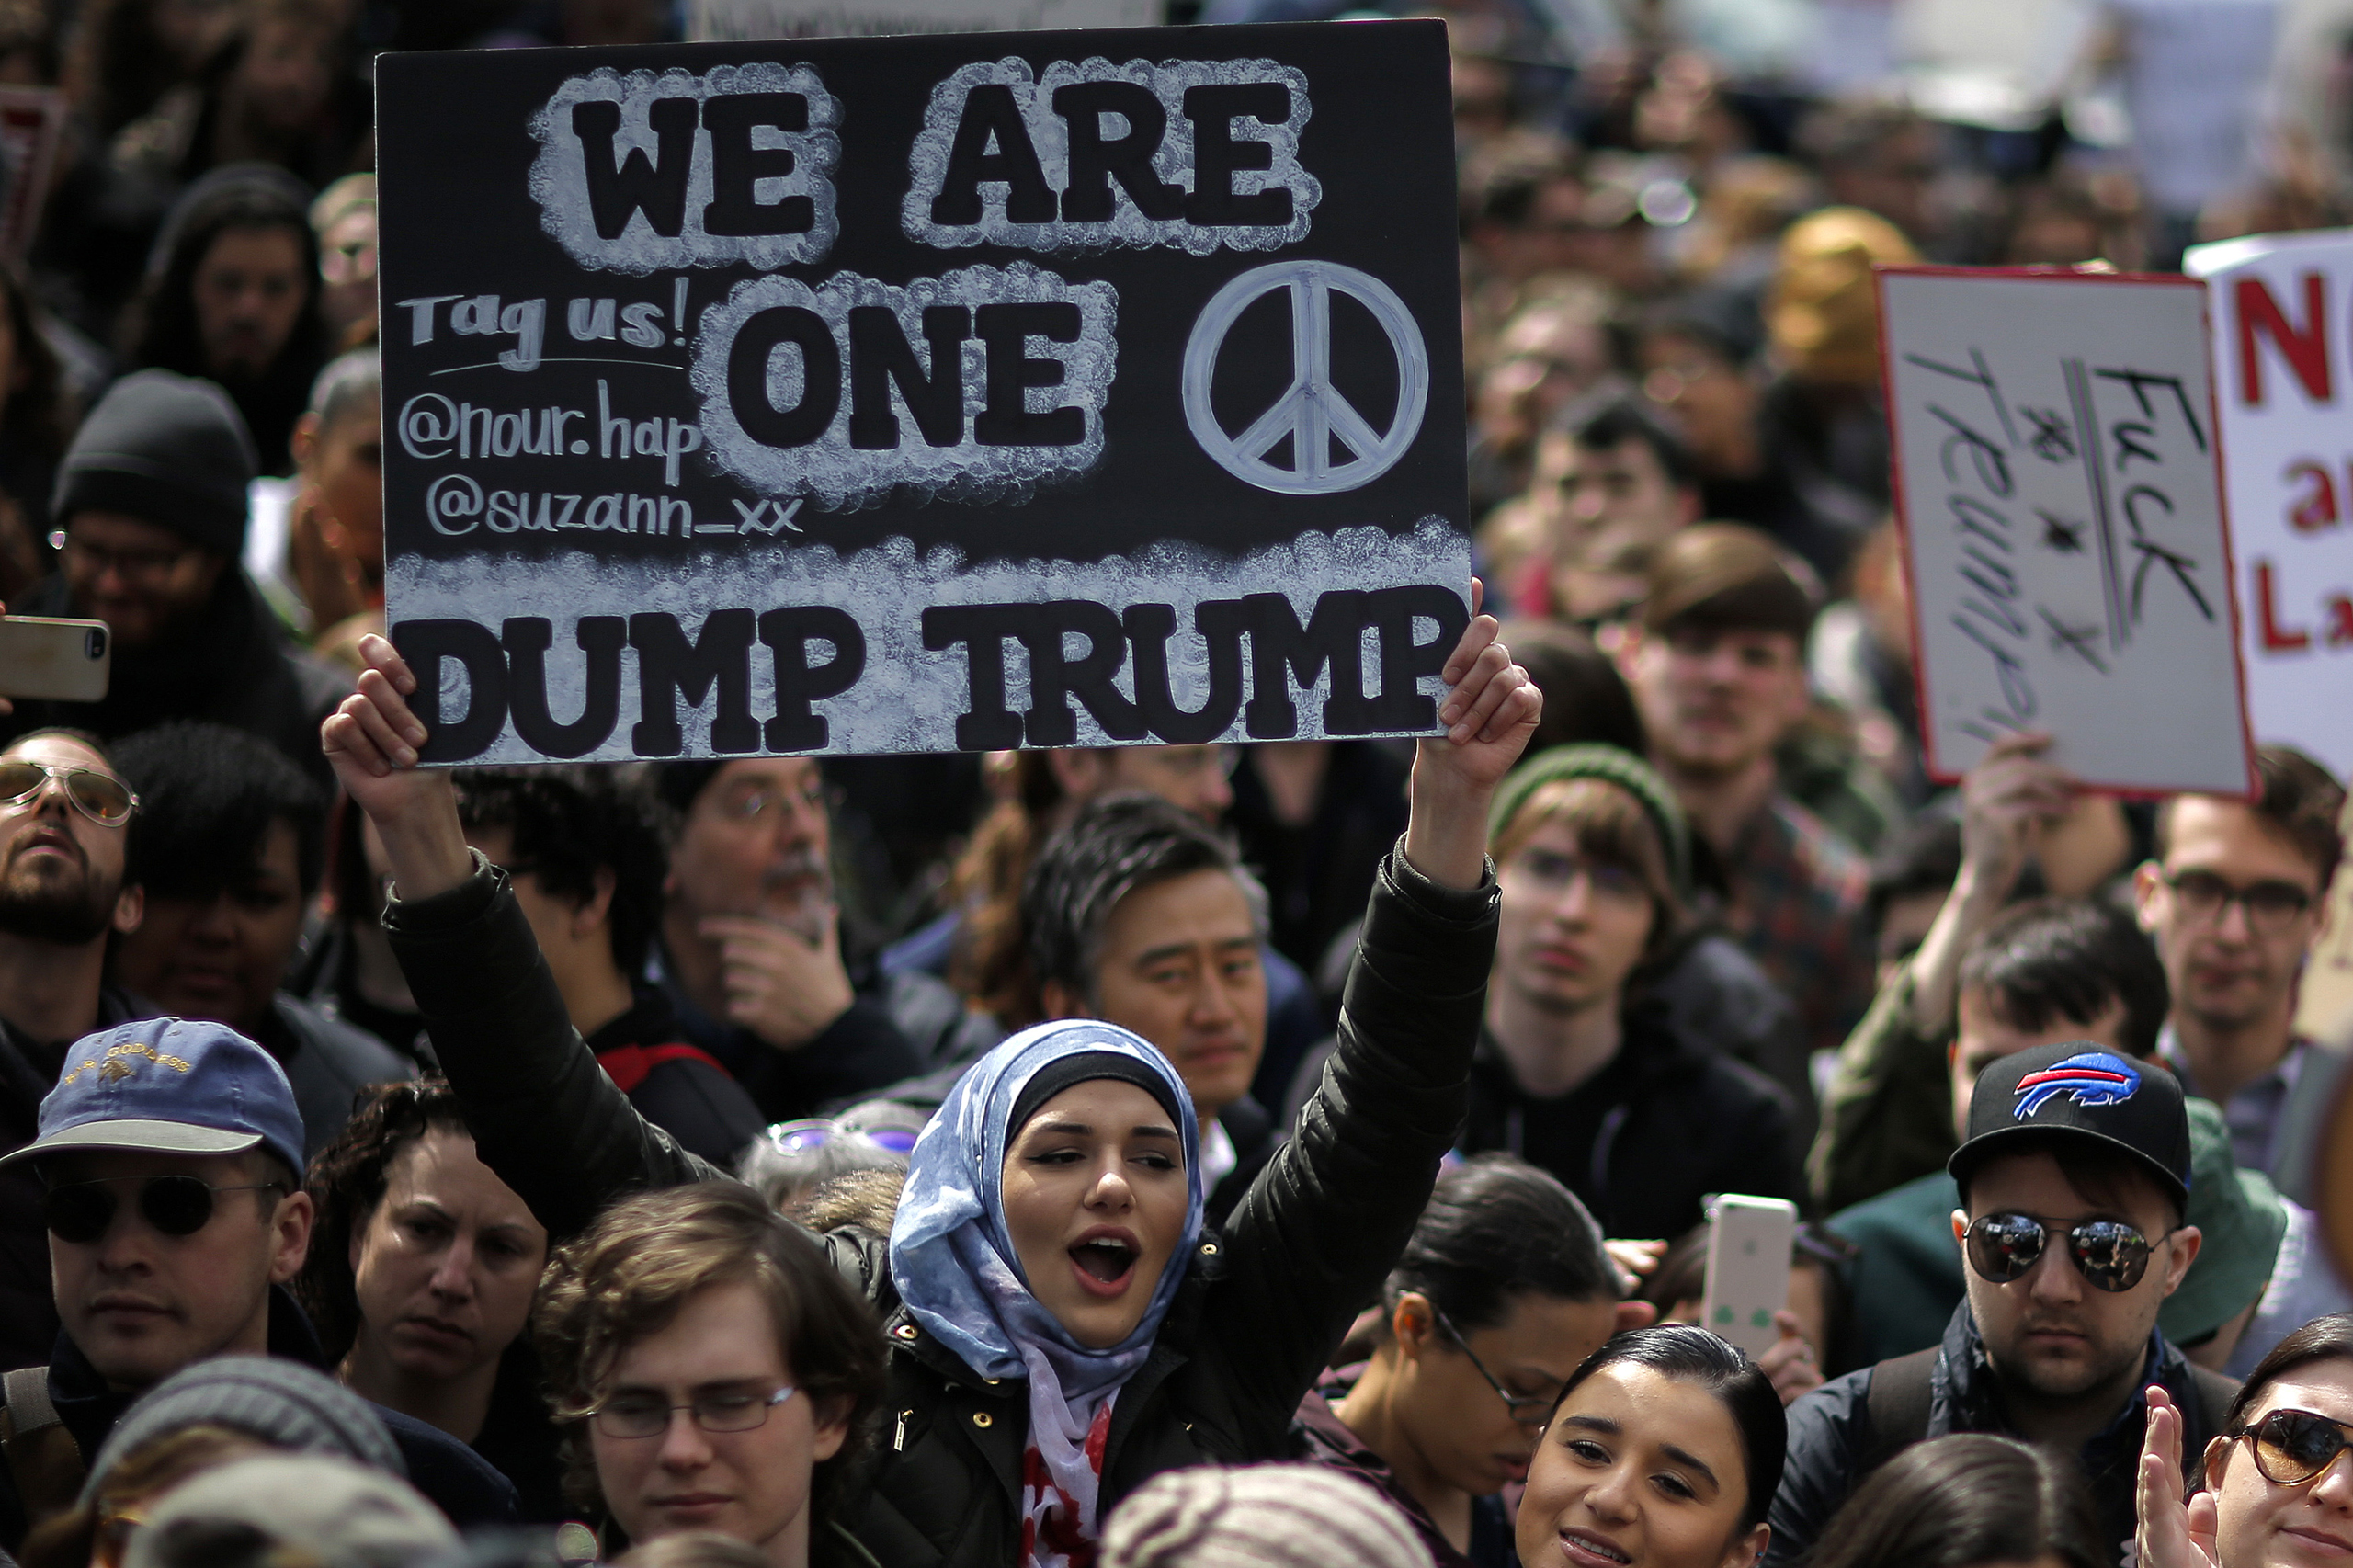 People take part in a protest against Republican presidential candidate Donald Trump in New York City, on March 19, 2016.